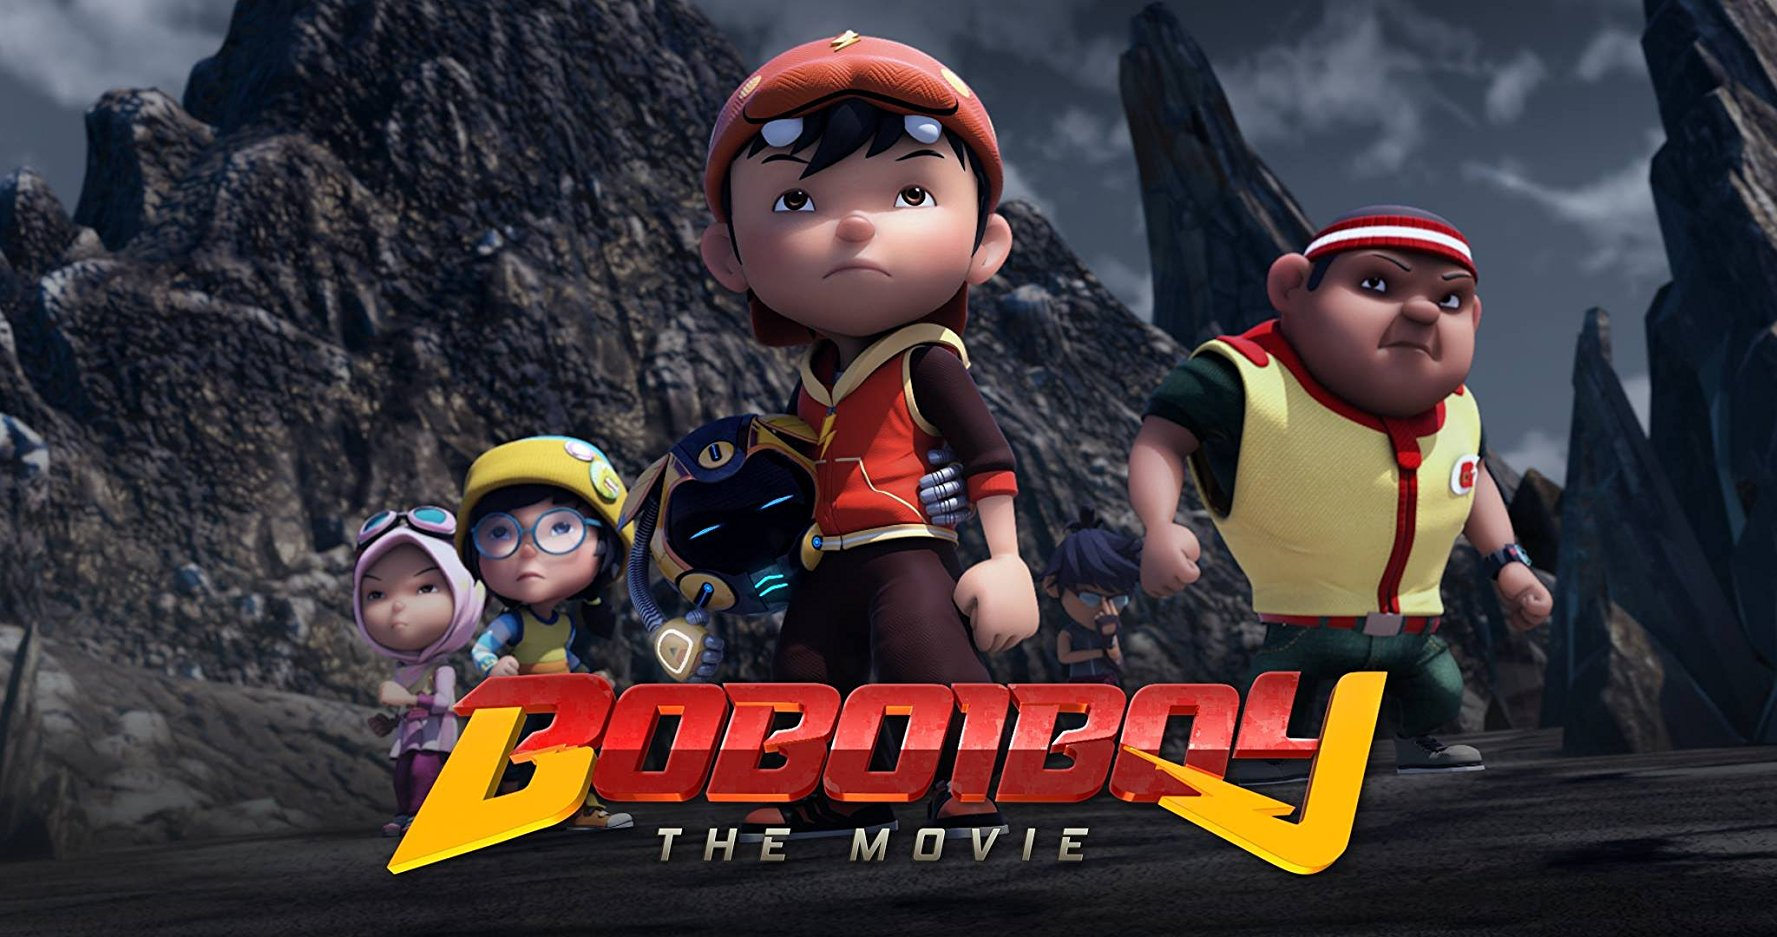 'BoBoiBoy' has stepped up way more than 'Upin & Ipin'.